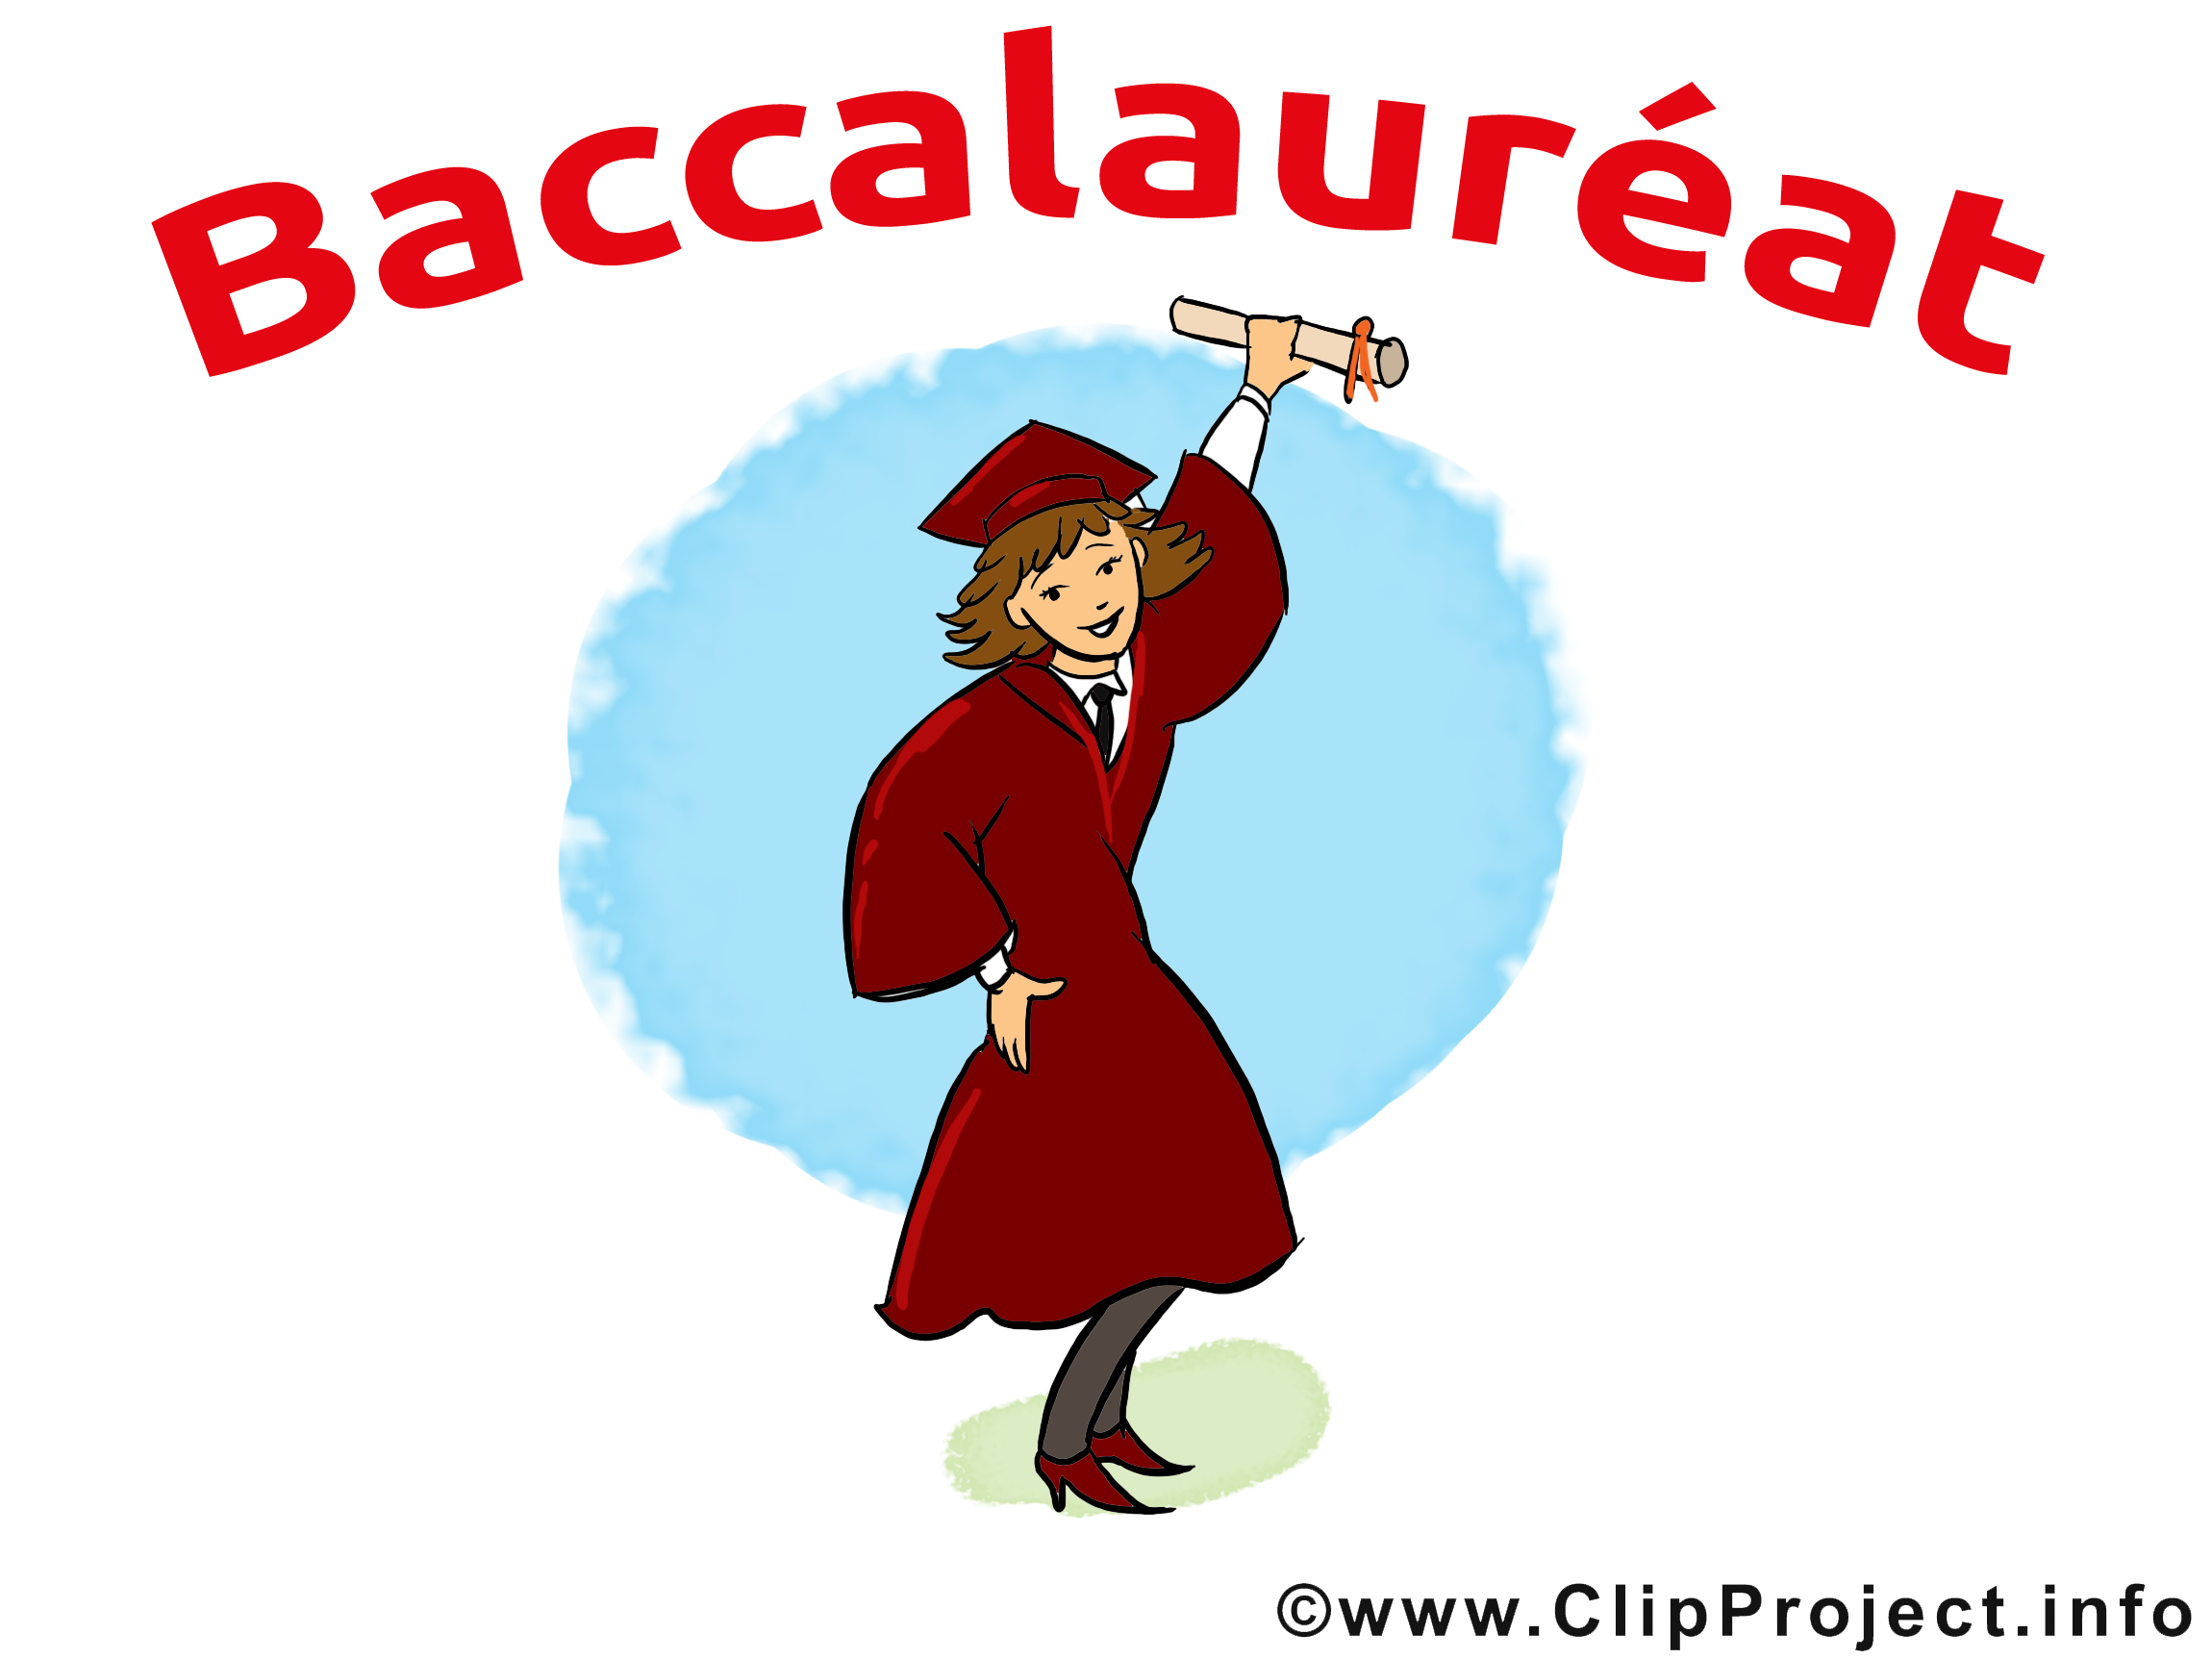 Illustration image baccalauréat images cliparts